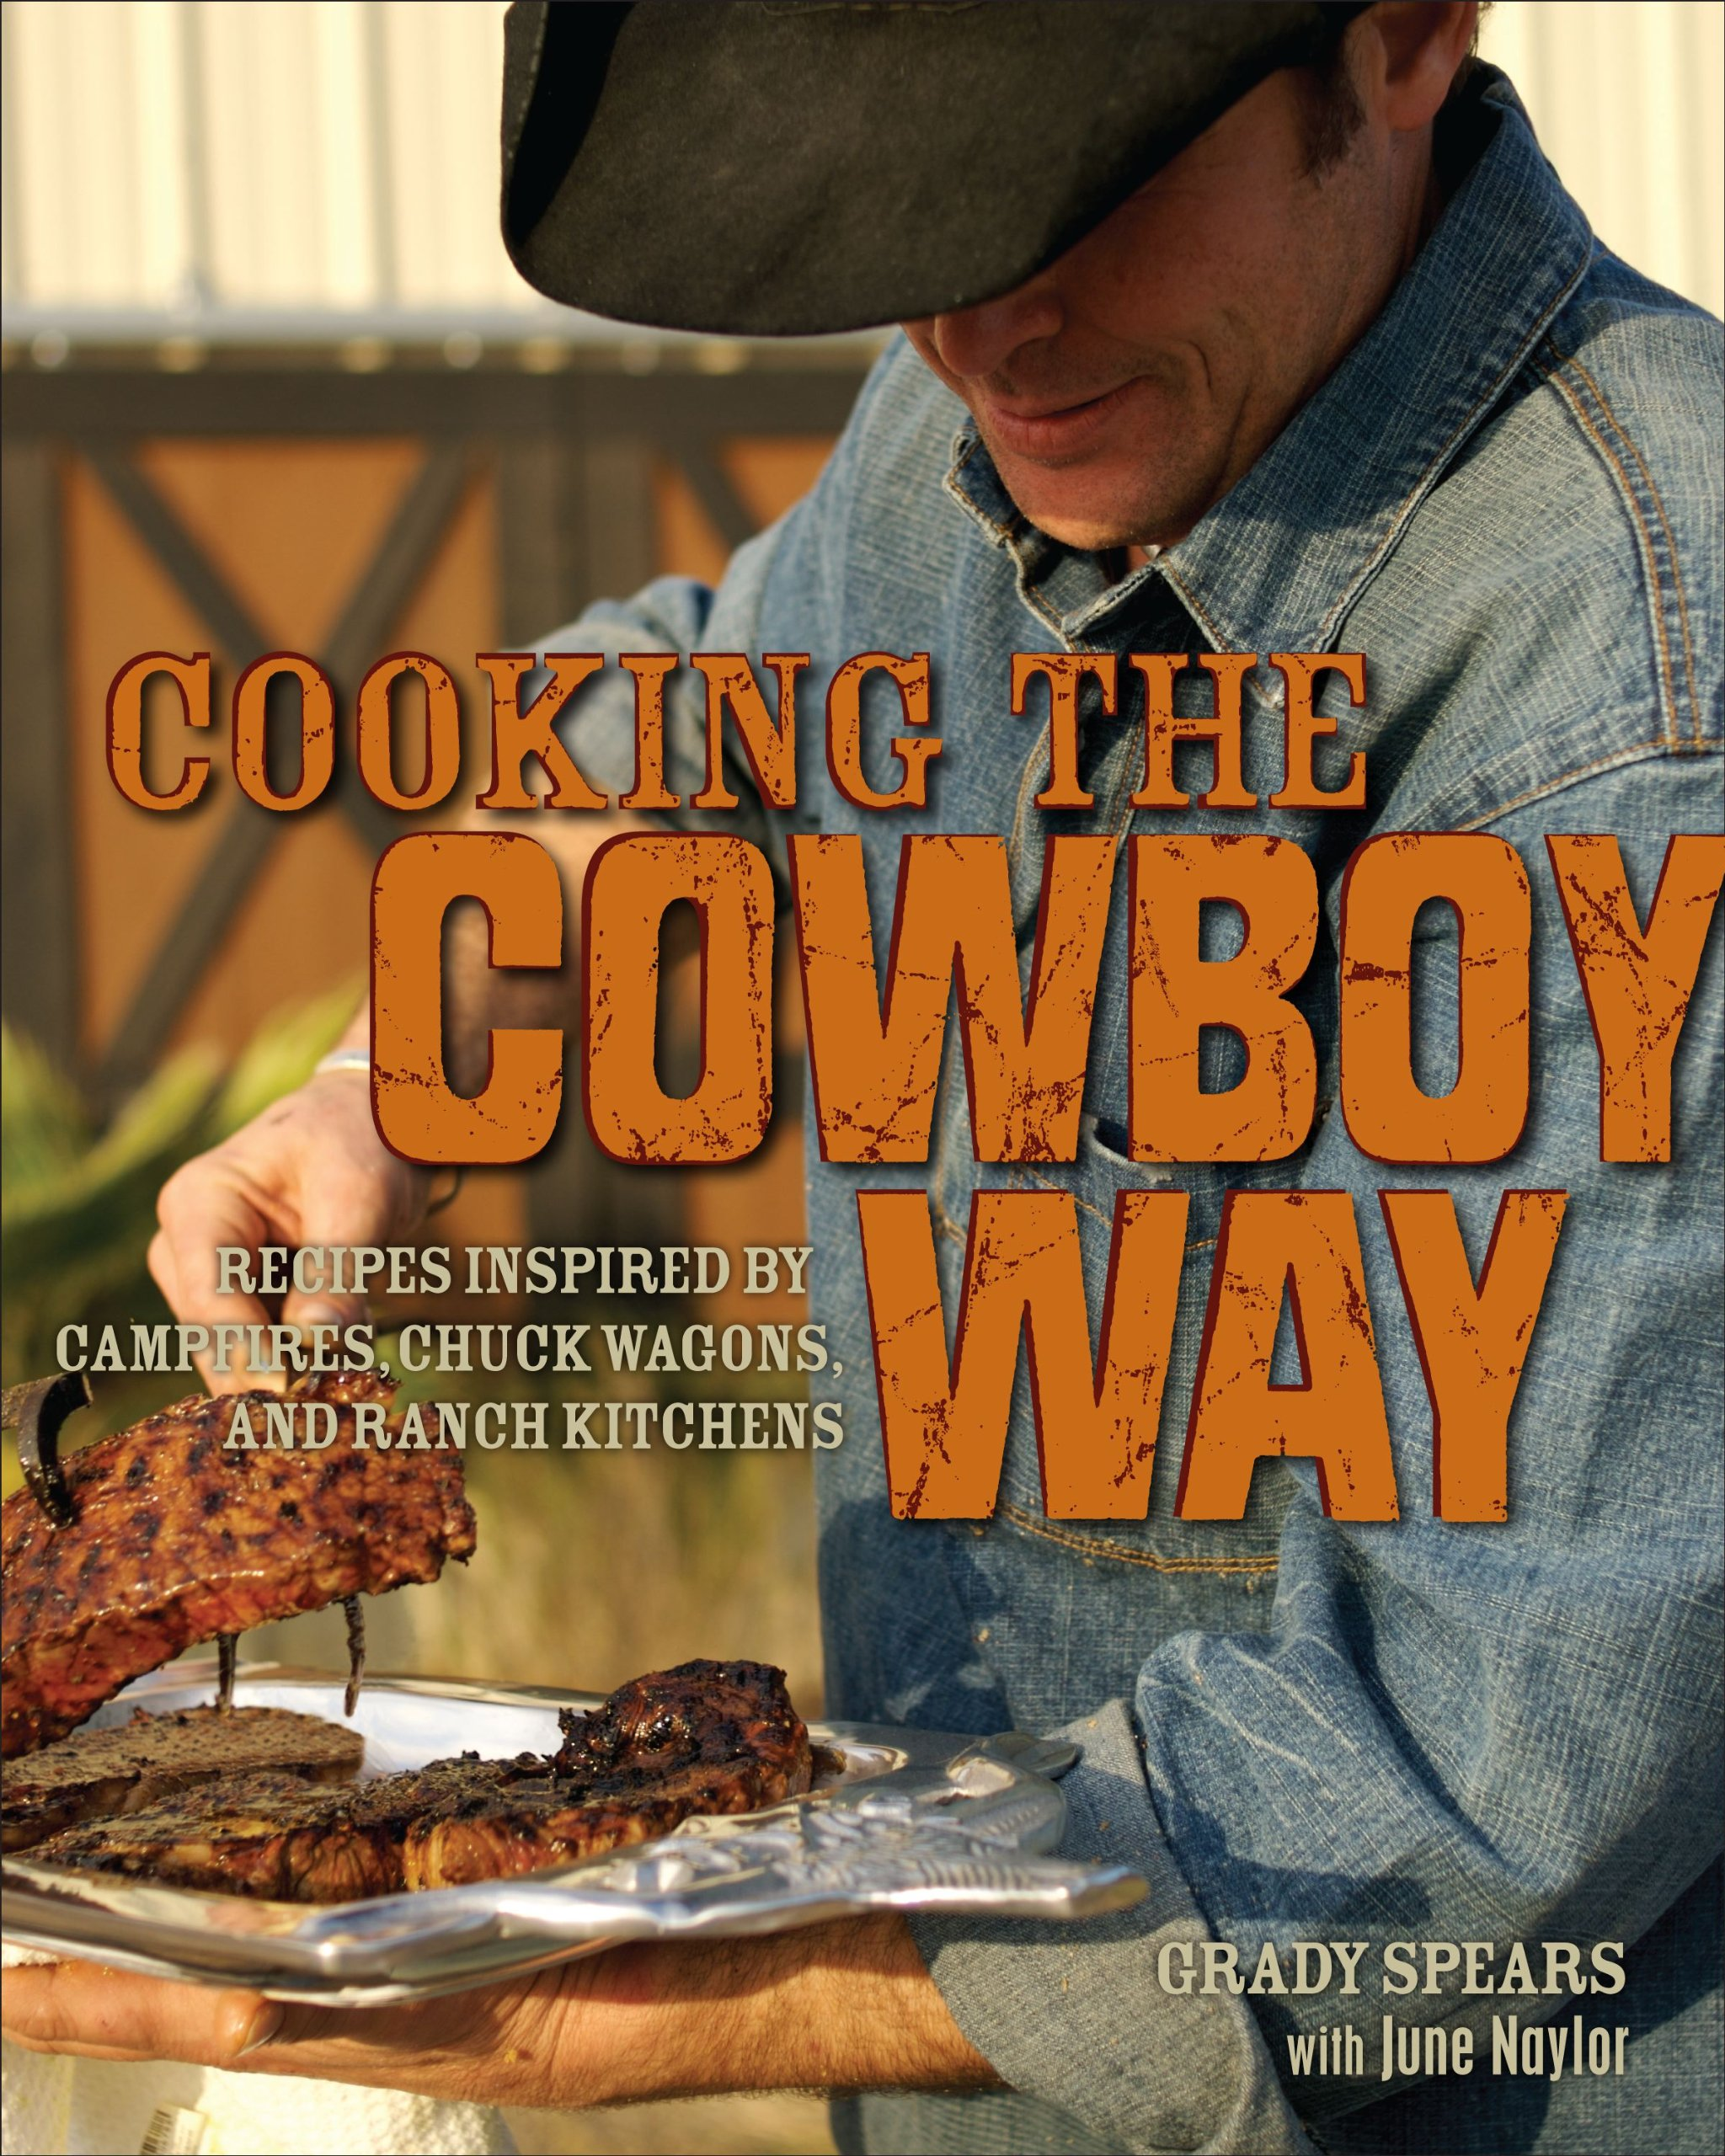 Cooking The Cowboy Way Recipes Inspired By Campfires Chuck Wagons